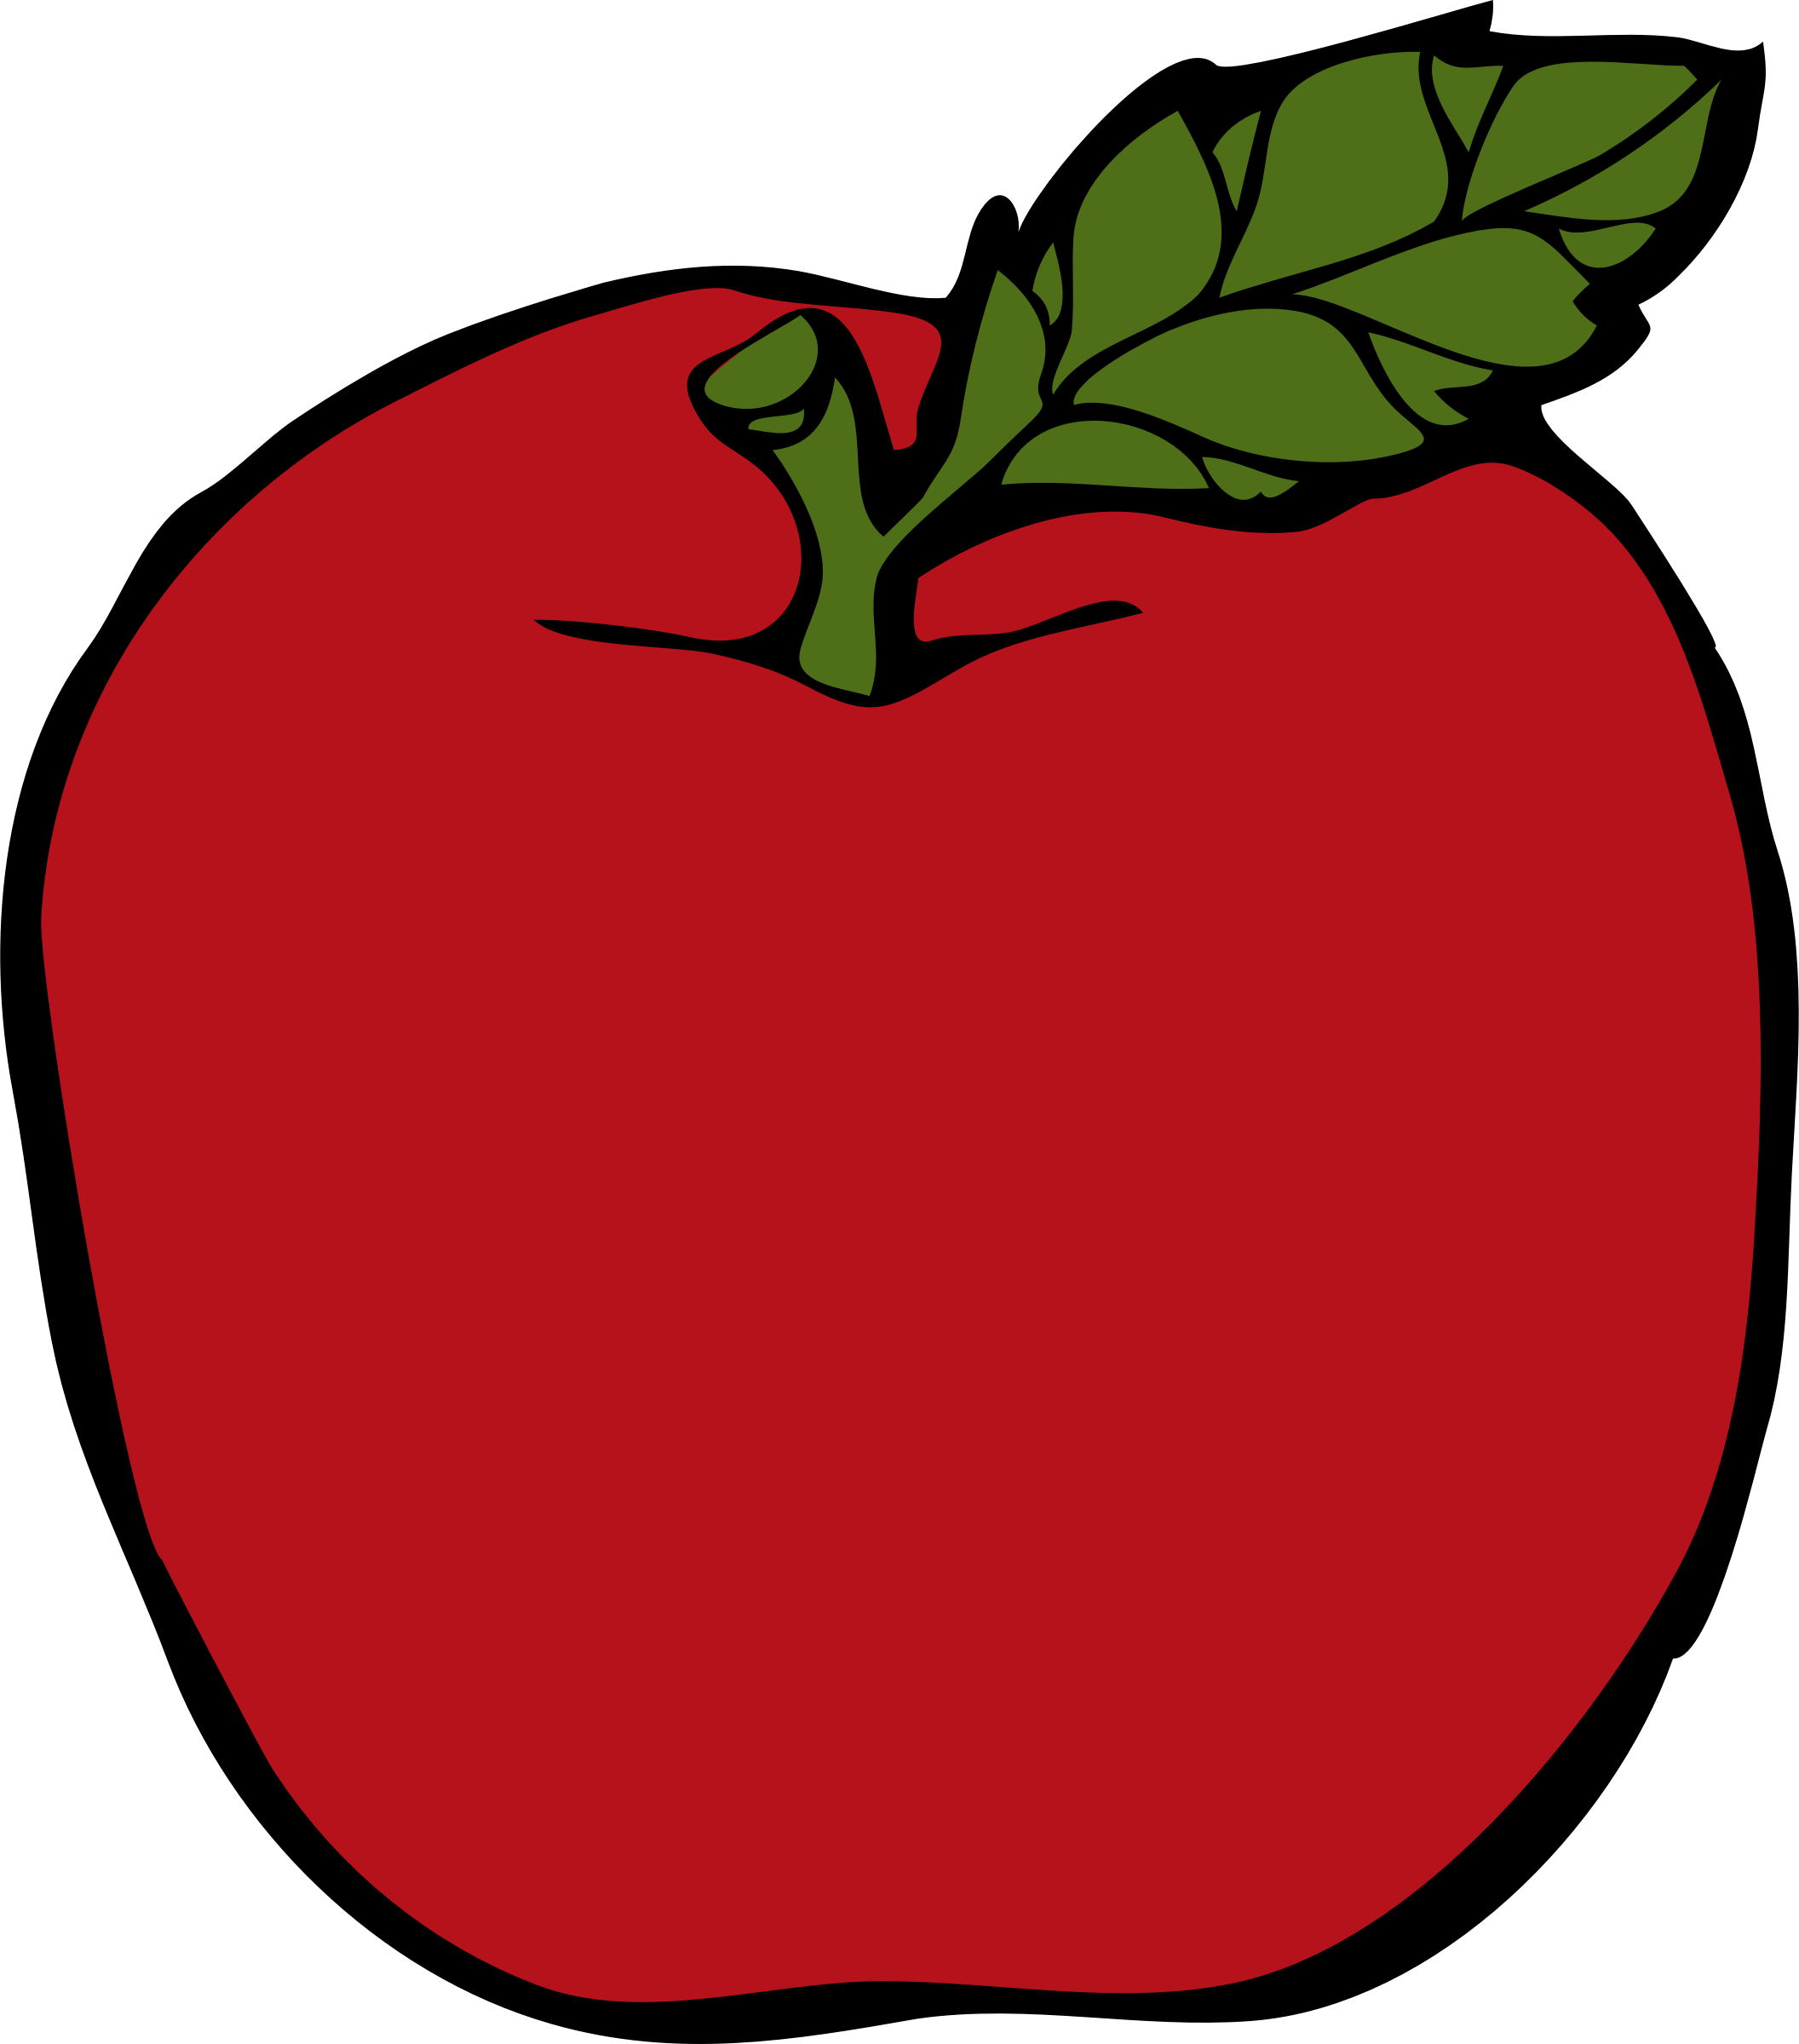 Worm clipart apple. Big image png